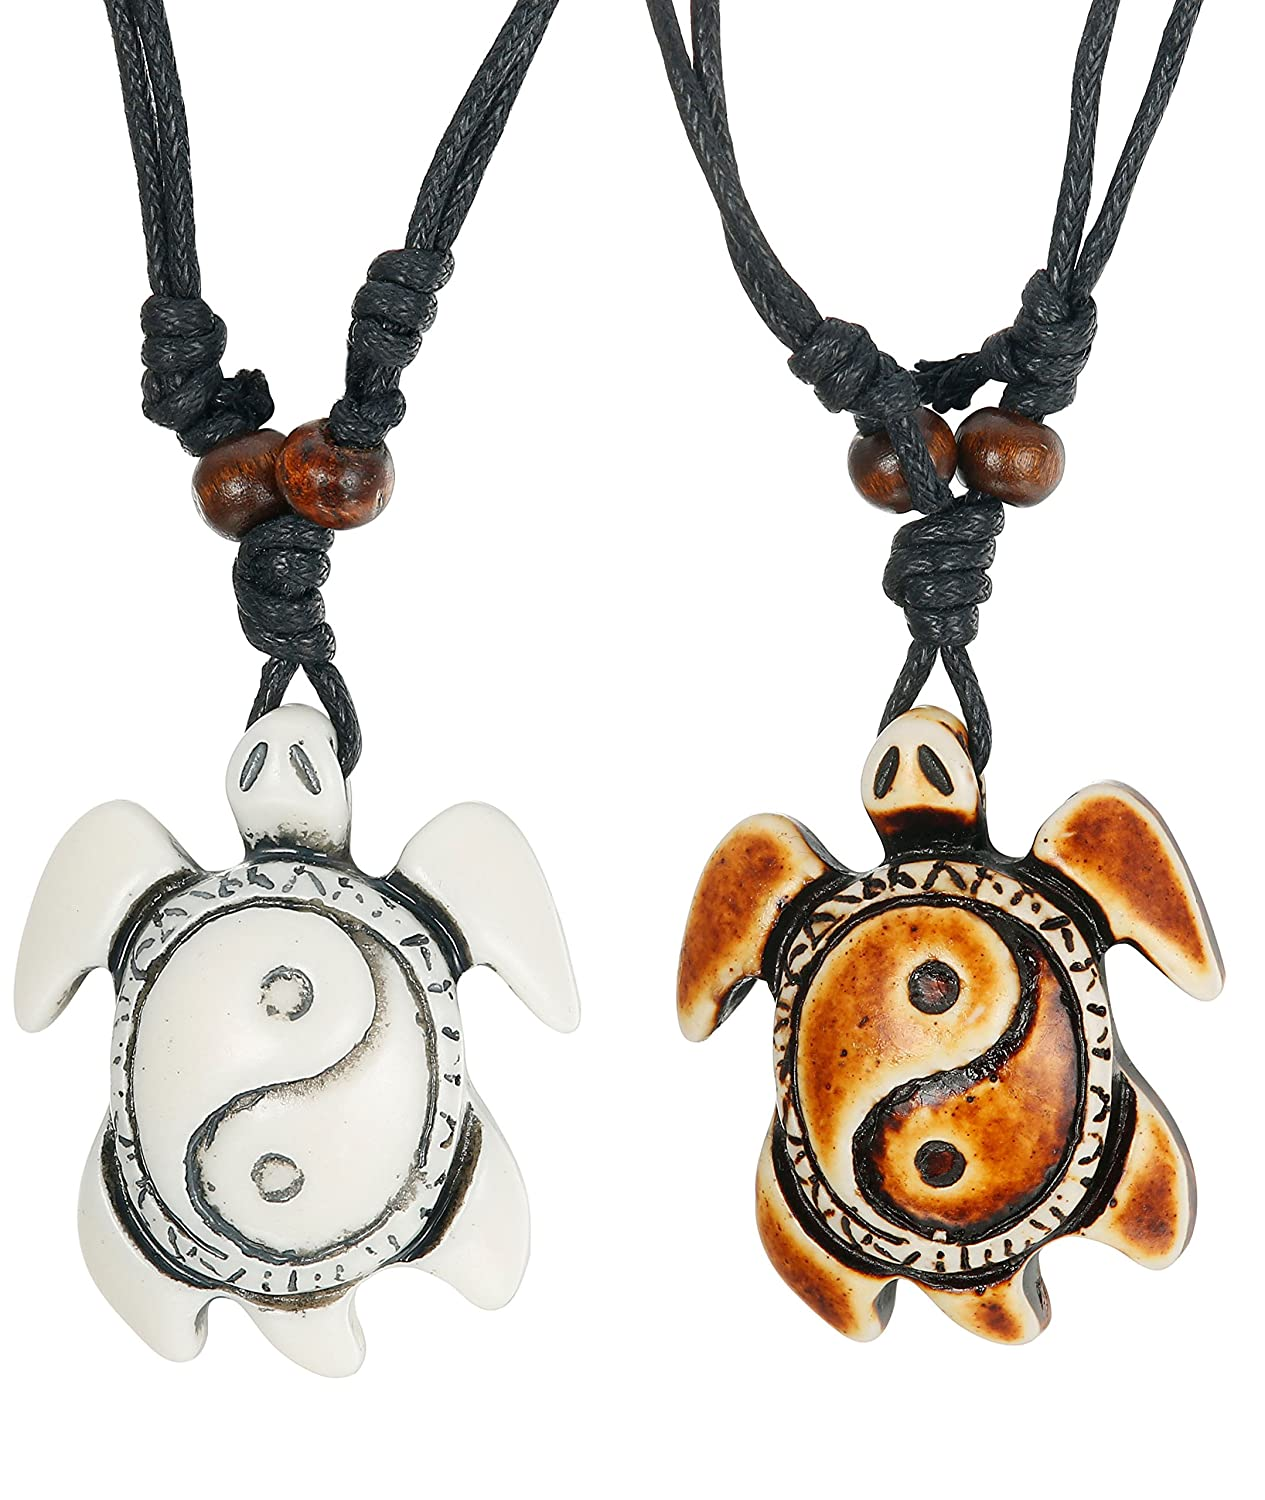 46dba1e8c9 LOYALLOOK 2pcs Sea Turtle Necklace Yin Yang Pendant Necklace with  Adjustable Cotton Cord for Boys